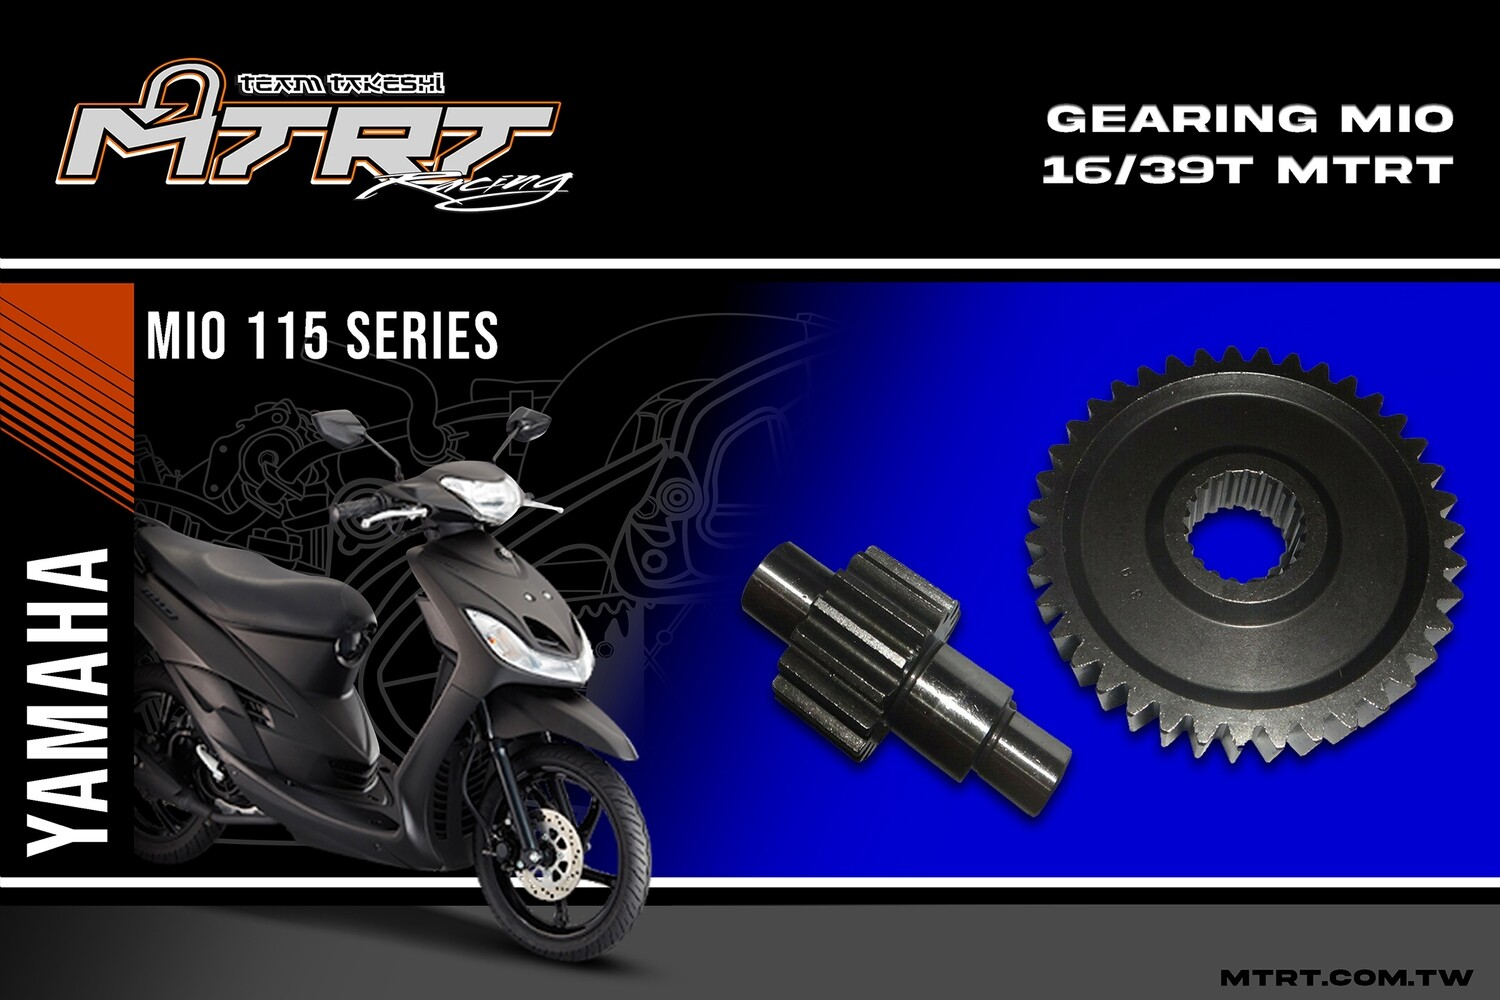 GEARING  MIO  16/39T  MTRT